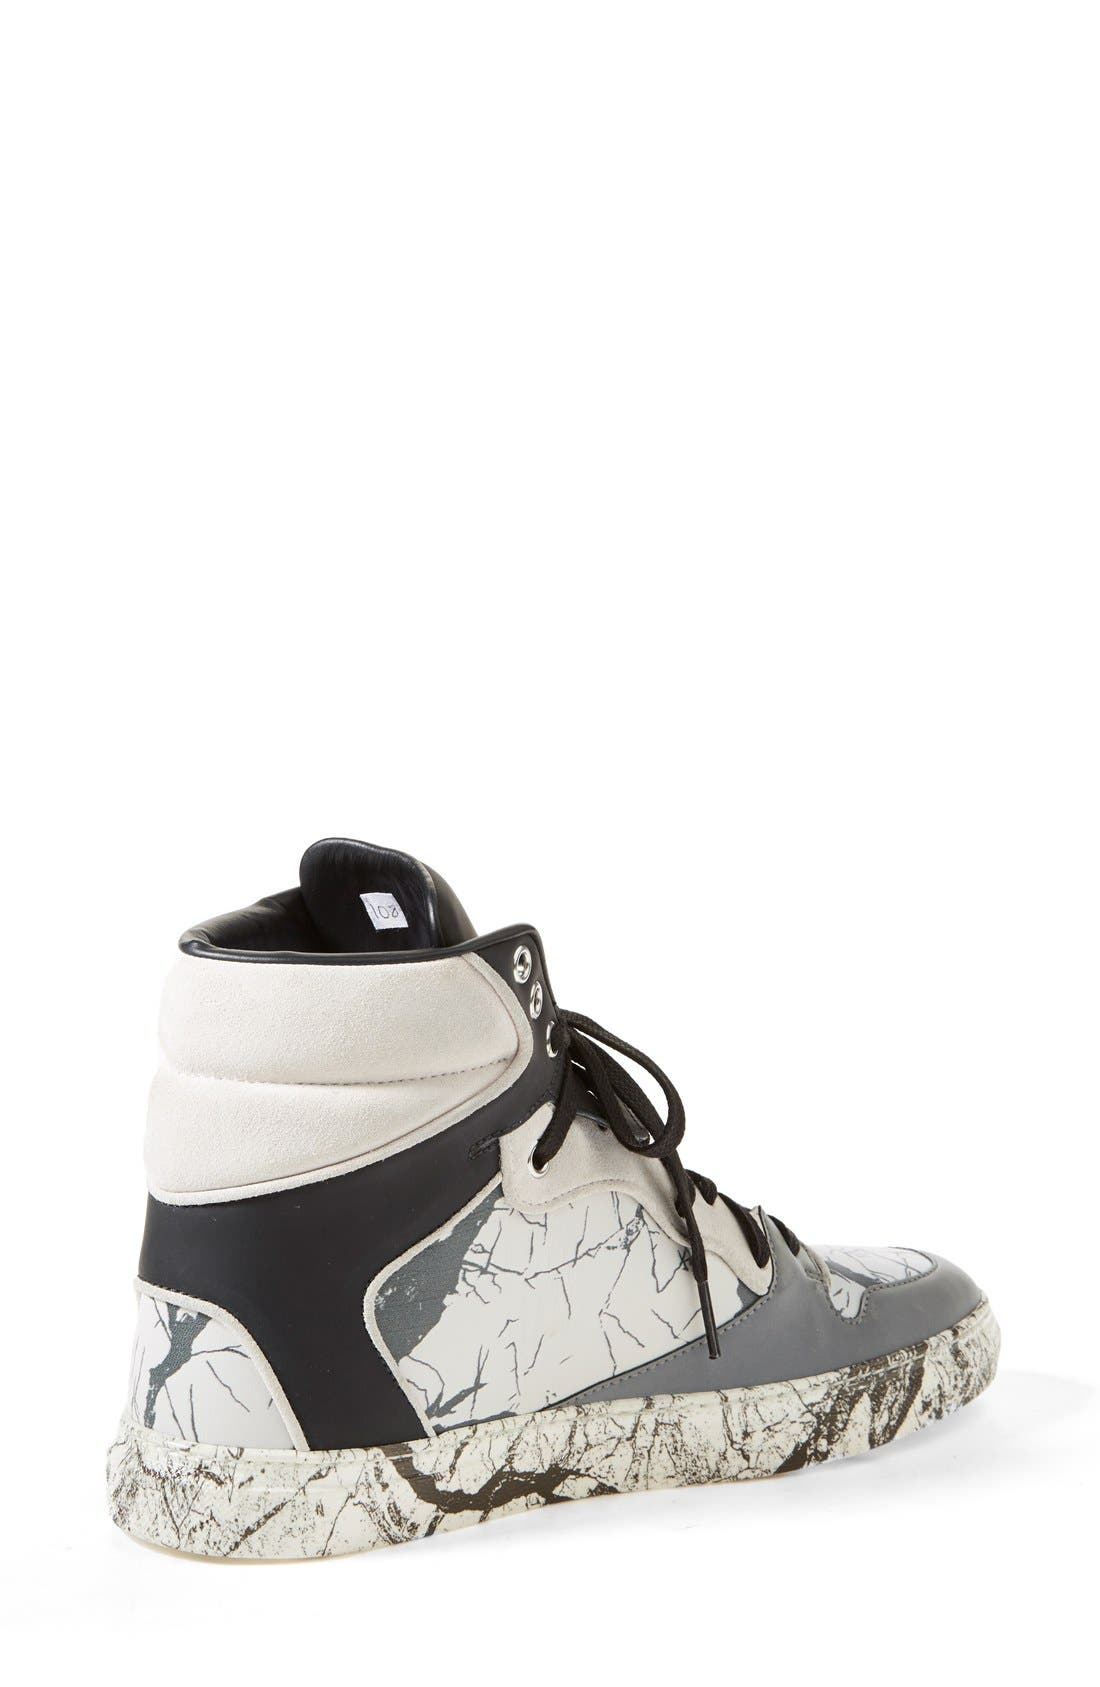 Alternate Image 2  - Balenciaga Nappa Leather High Top Sneaker (Women)